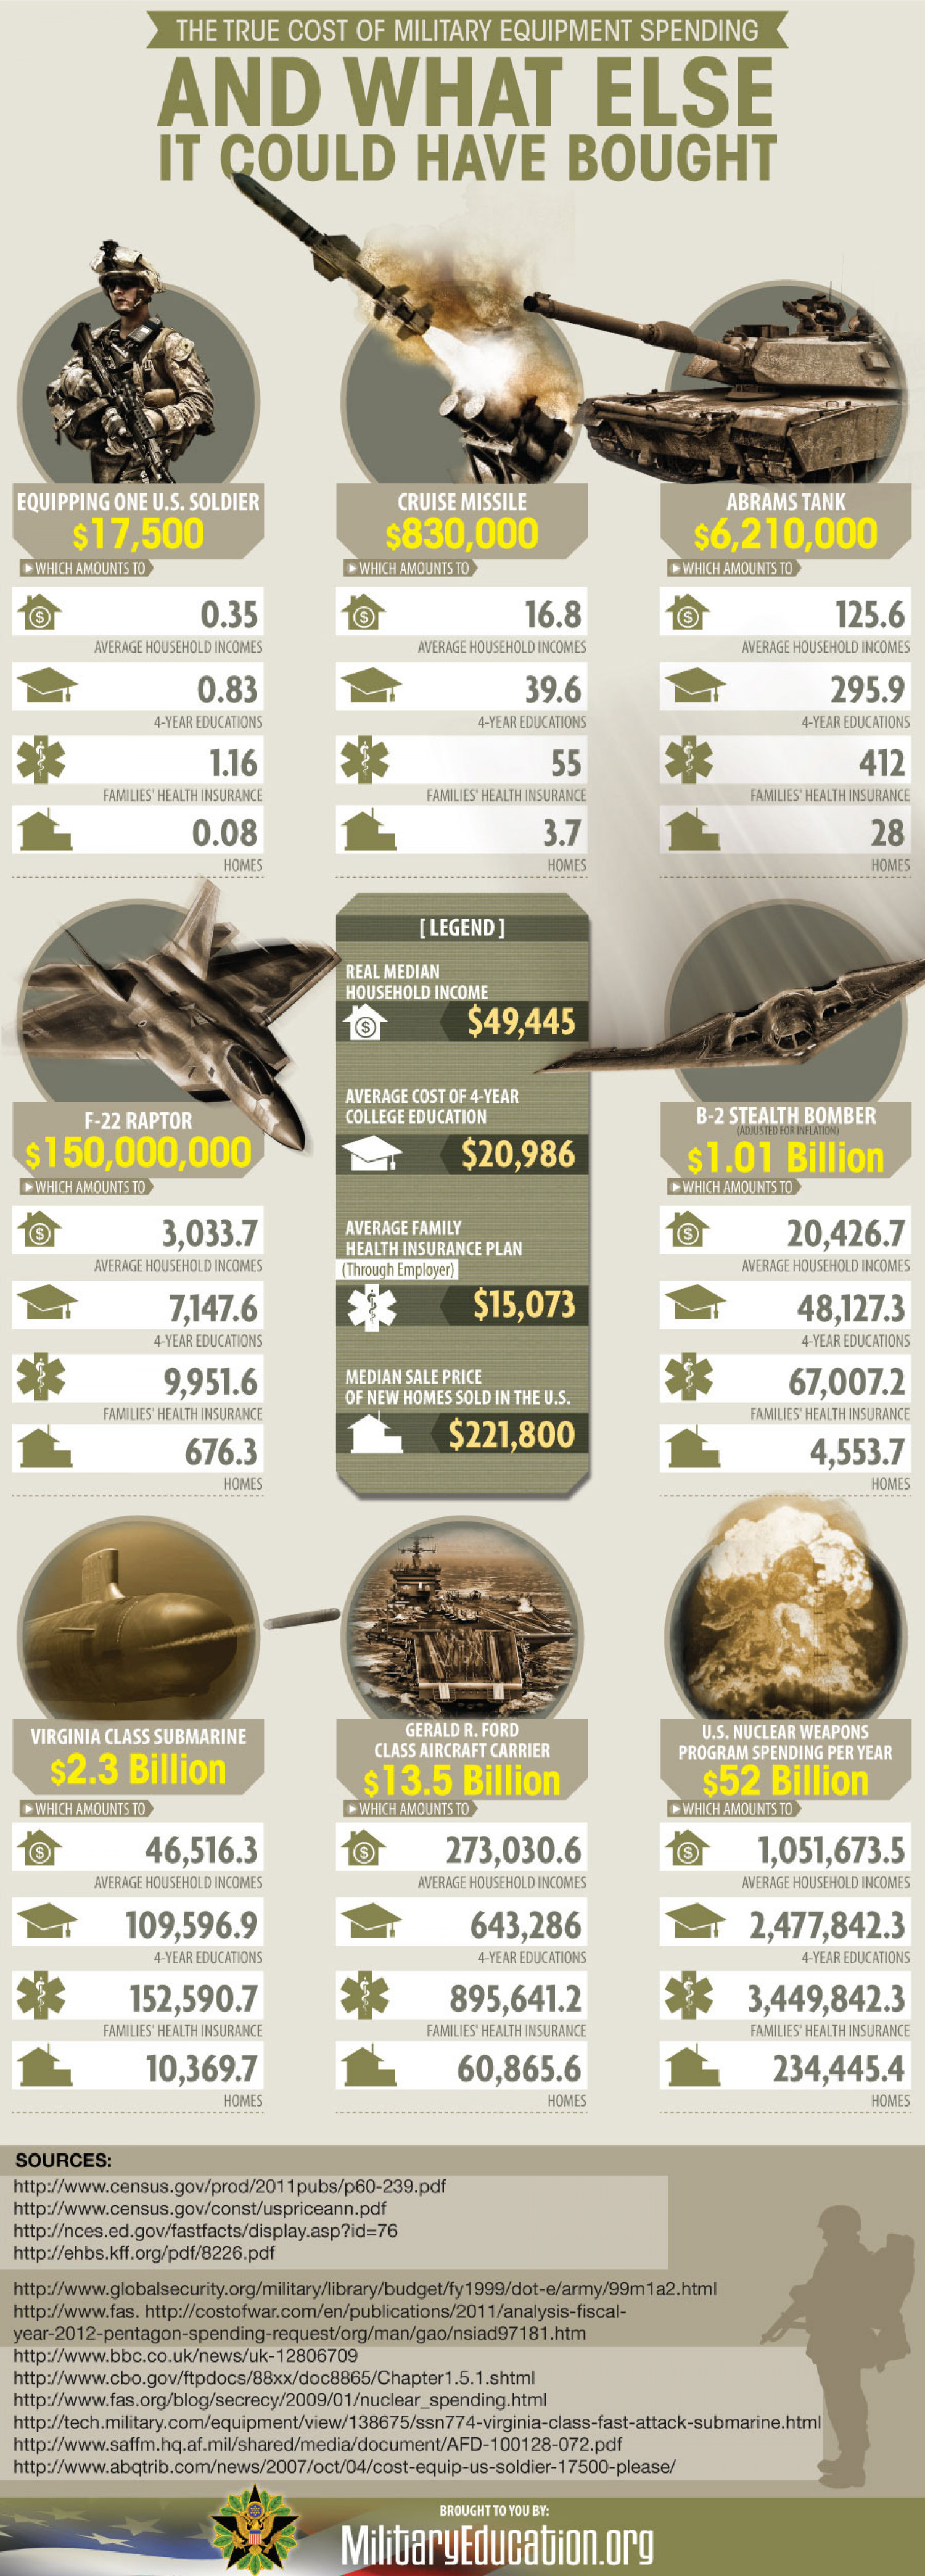 The True Cost of Military Equipment Spending Infographic